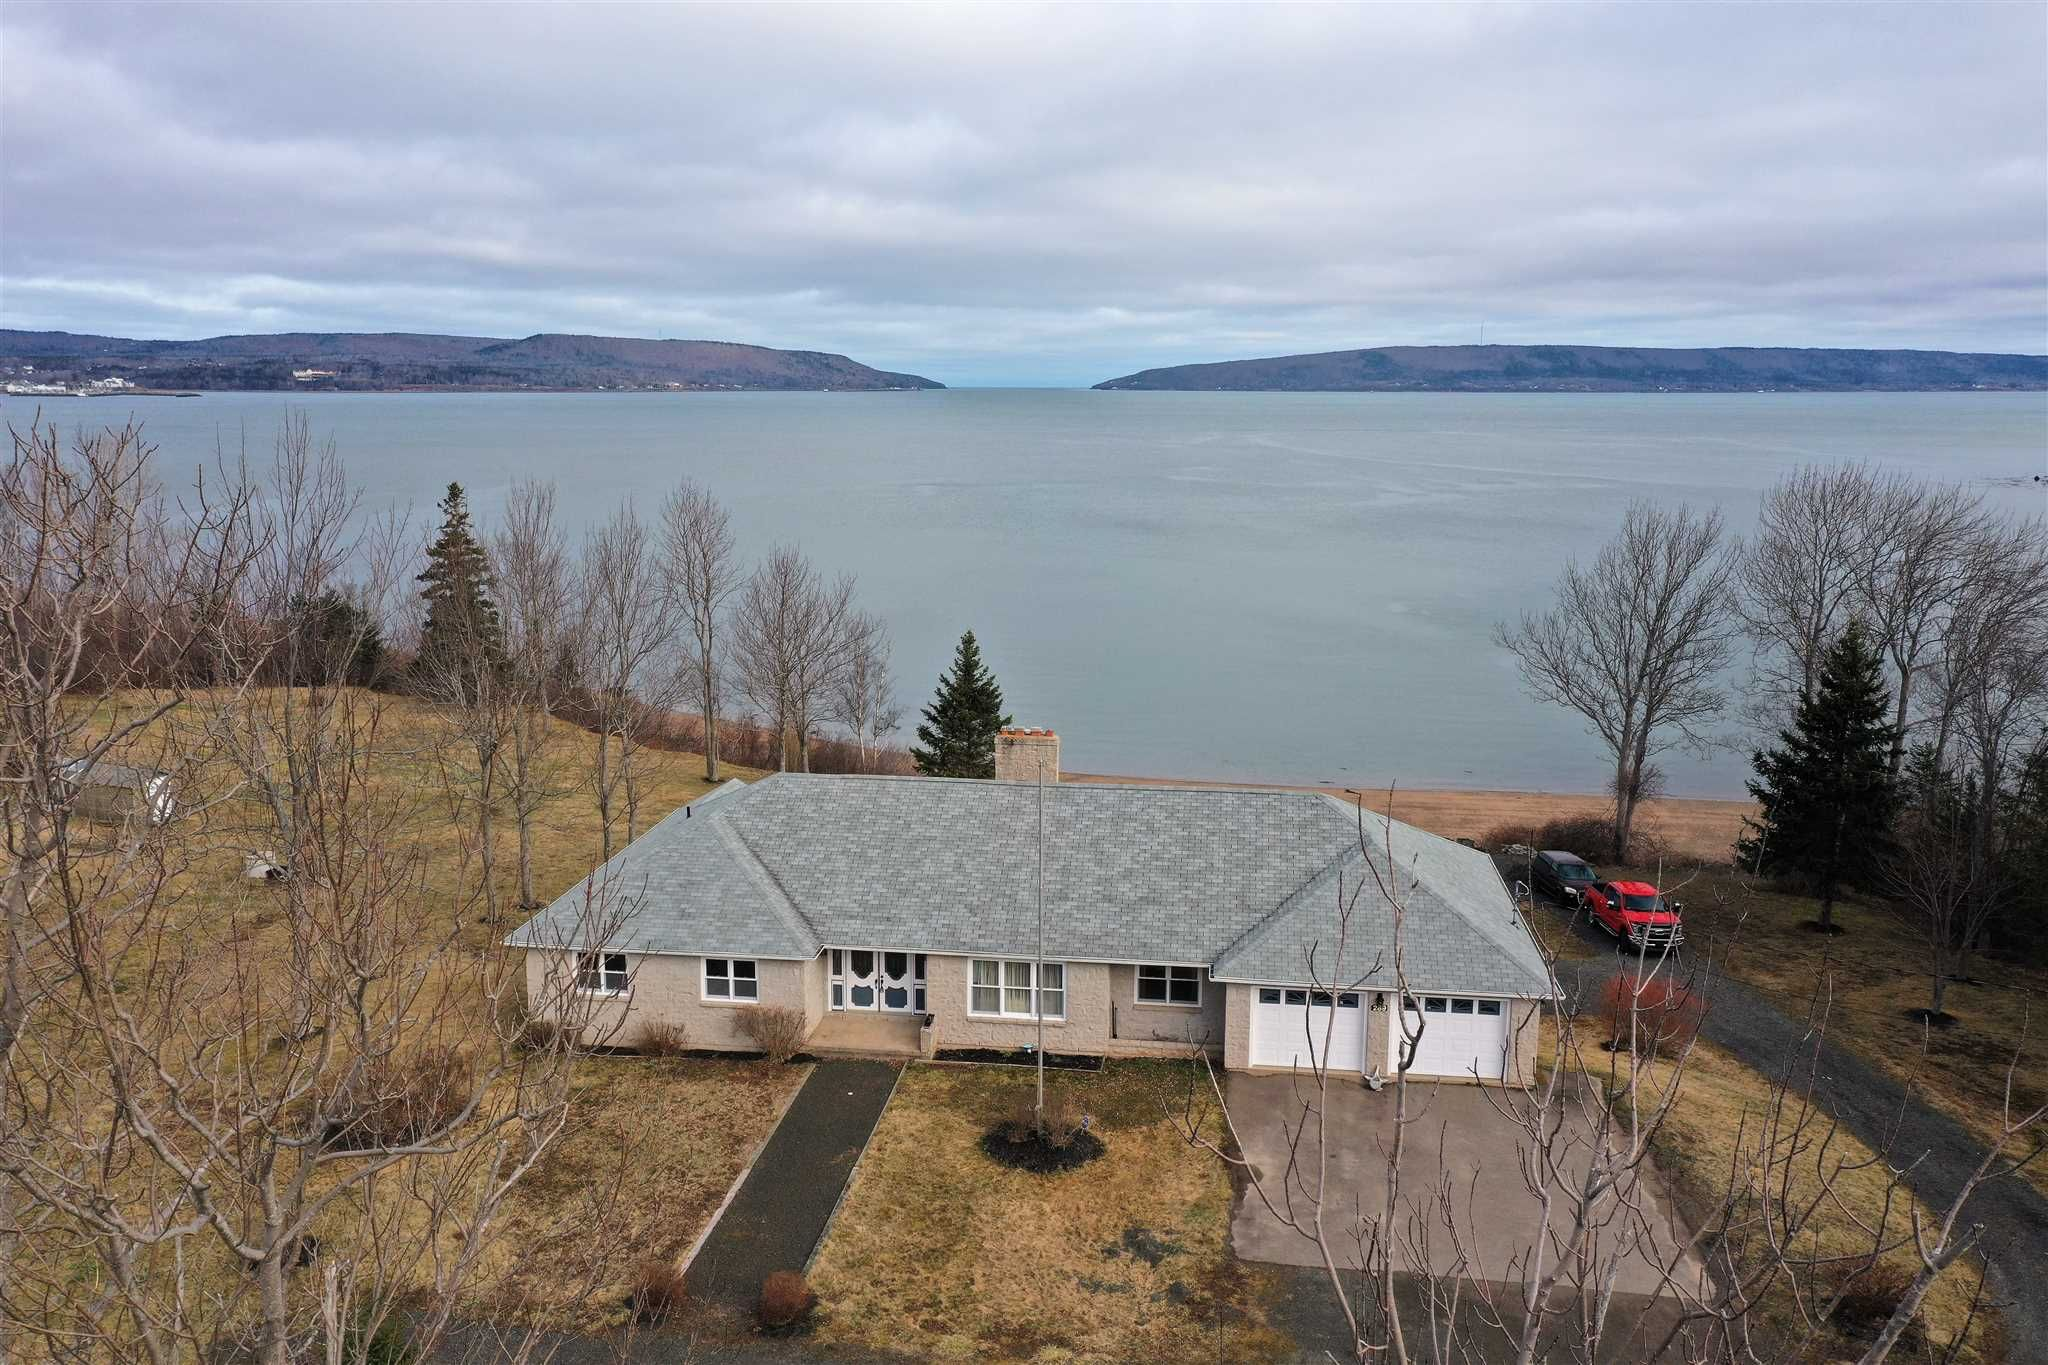 Main Photo: 289 HIGHWAY 1 in Smiths Cove: 401-Digby County Residential for sale (Annapolis Valley)  : MLS®# 202106371